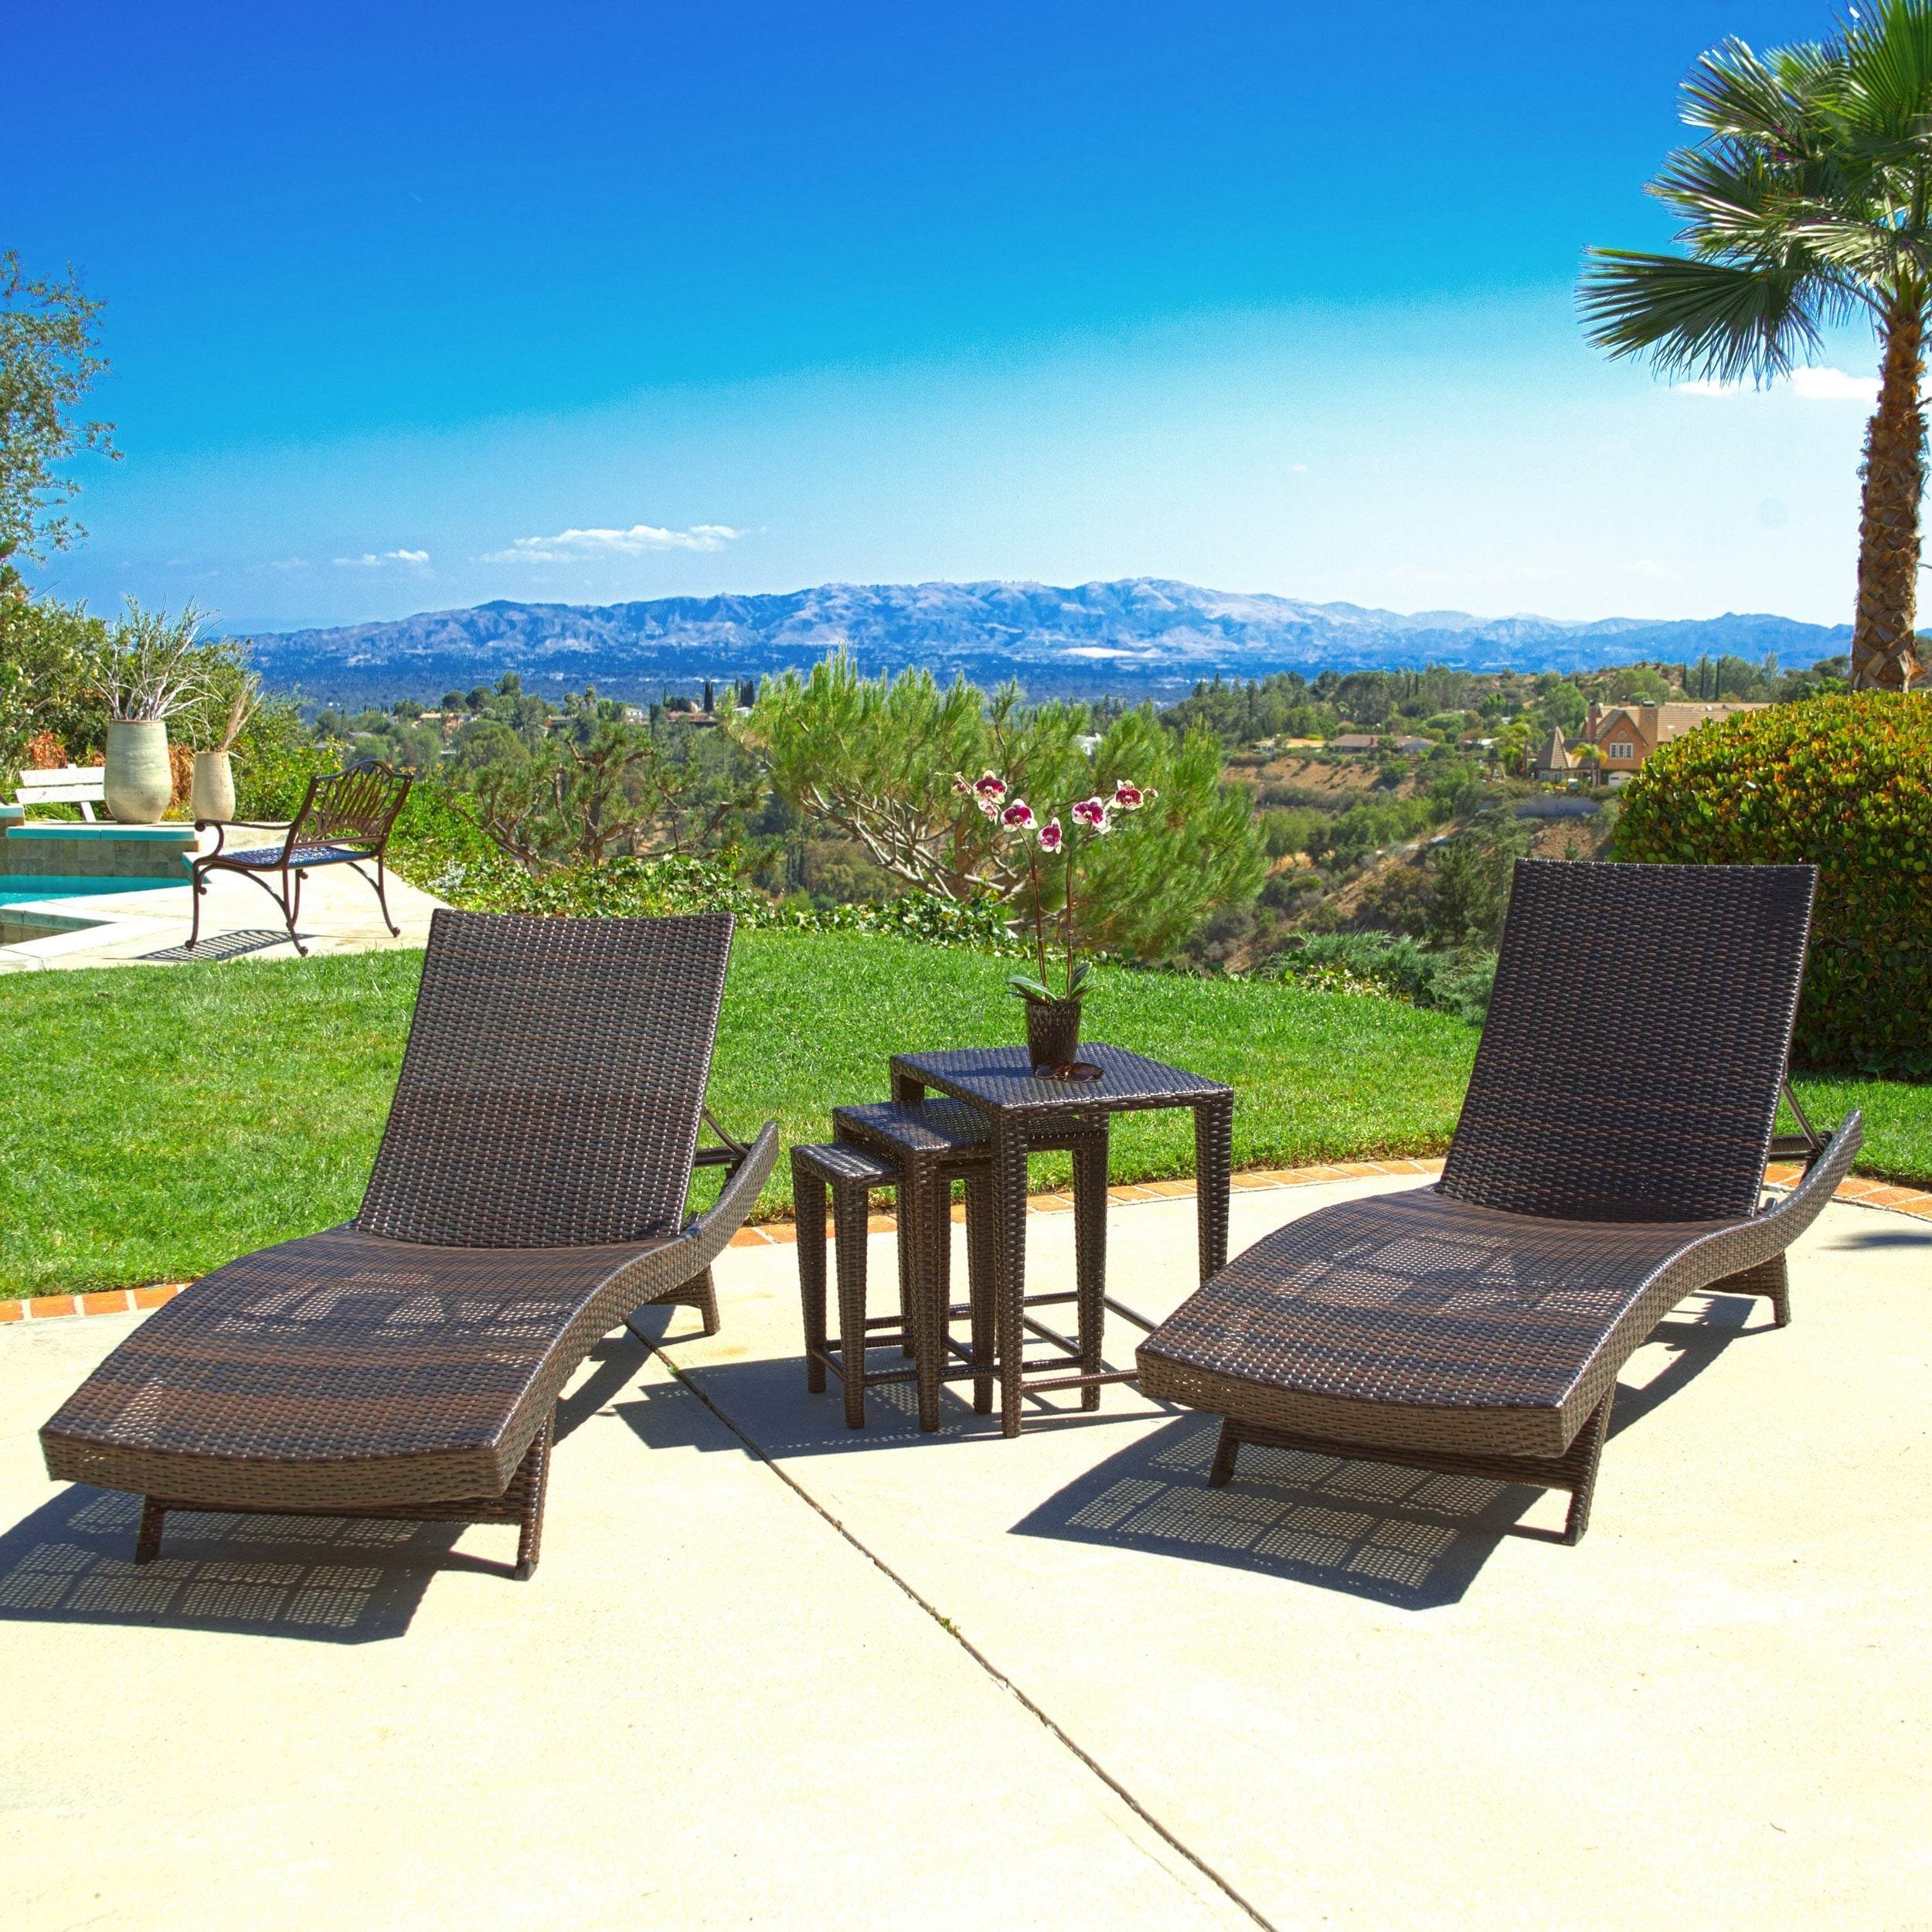 Outdoor Brown Wicker 5-piece Adjustable Chaise Lounge Set...